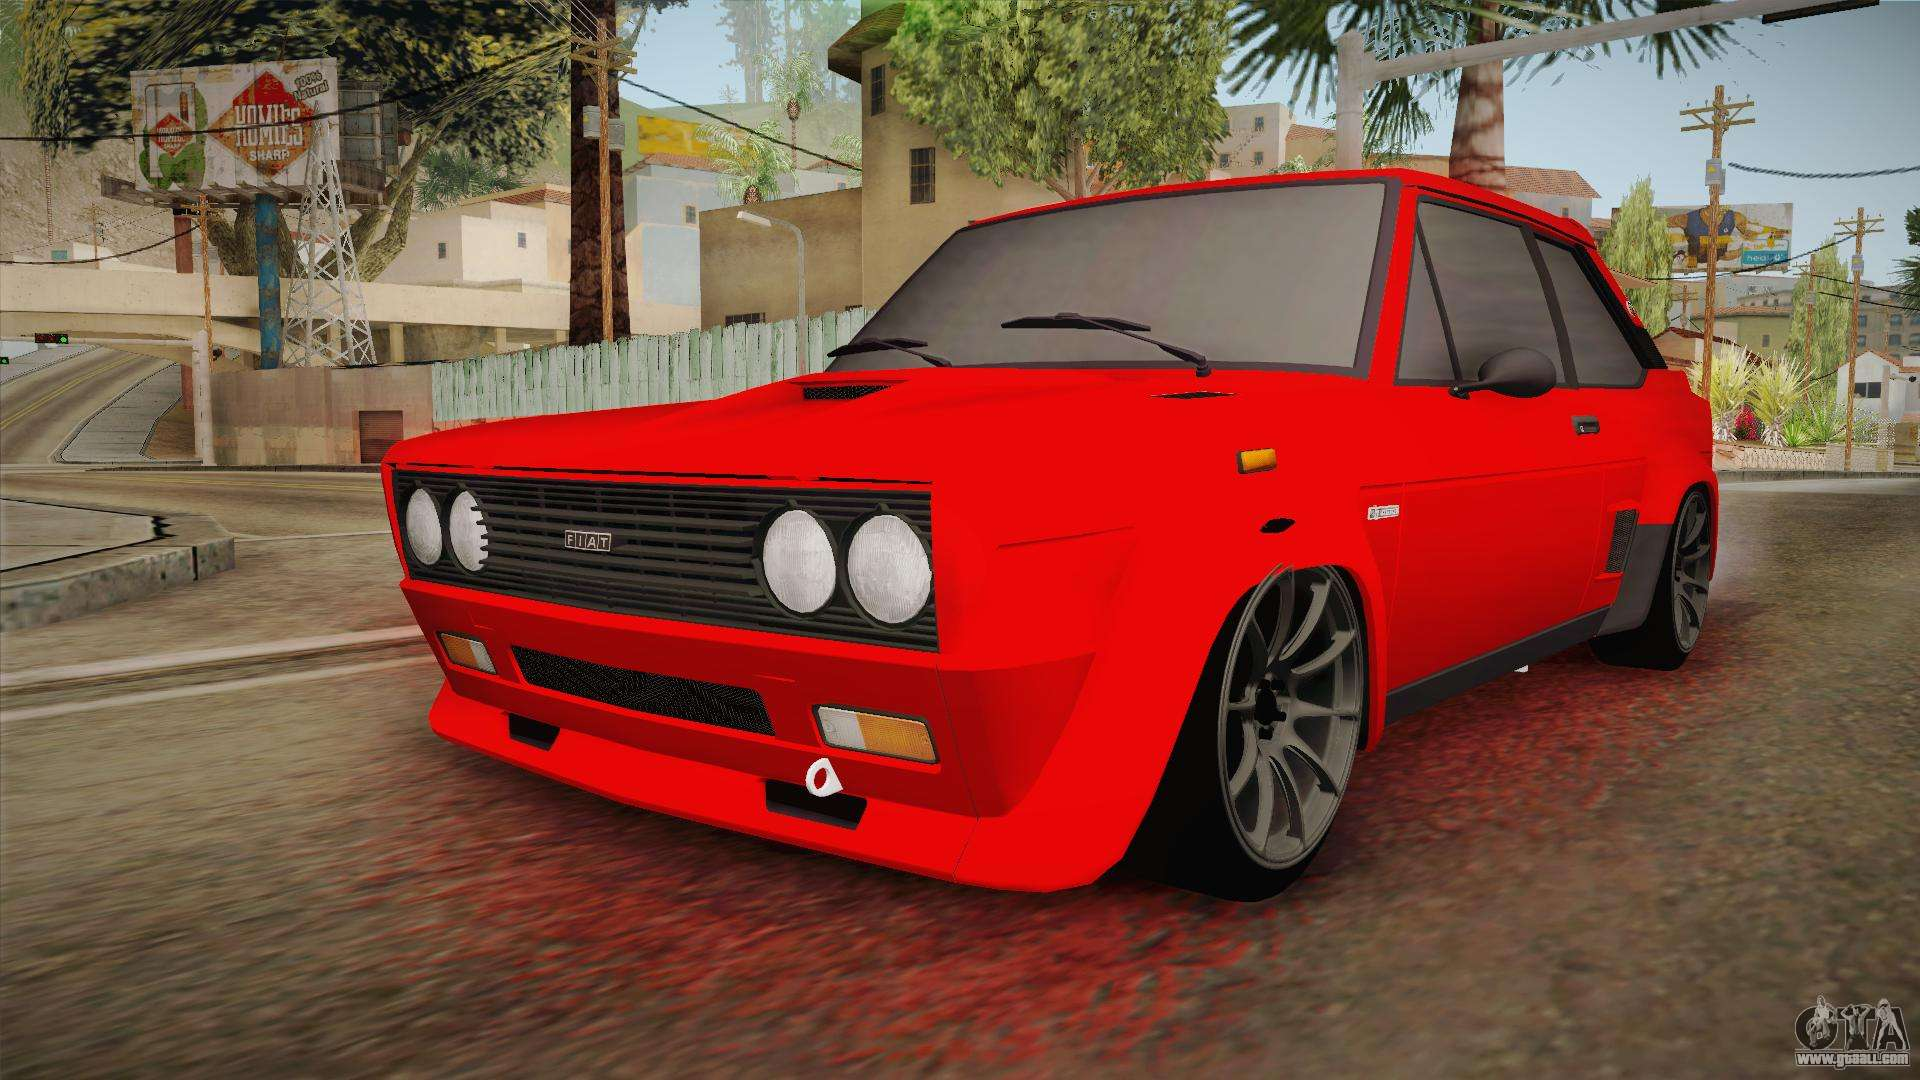 Fiat 131 Abarth For Gta San Andreas. Multifocal Breast Cancer Job Recruiters In Ct. Assisted Living In Colorado Springs. Cash Advance Small Business Ftp File Hosting. What You Need To Become A Registered Nurse. Home Contents Insurance Comparison. Roofing Companies In New Orleans. Transport Motorcycle In Truck. Global Processing Systems Texas Trade Schools